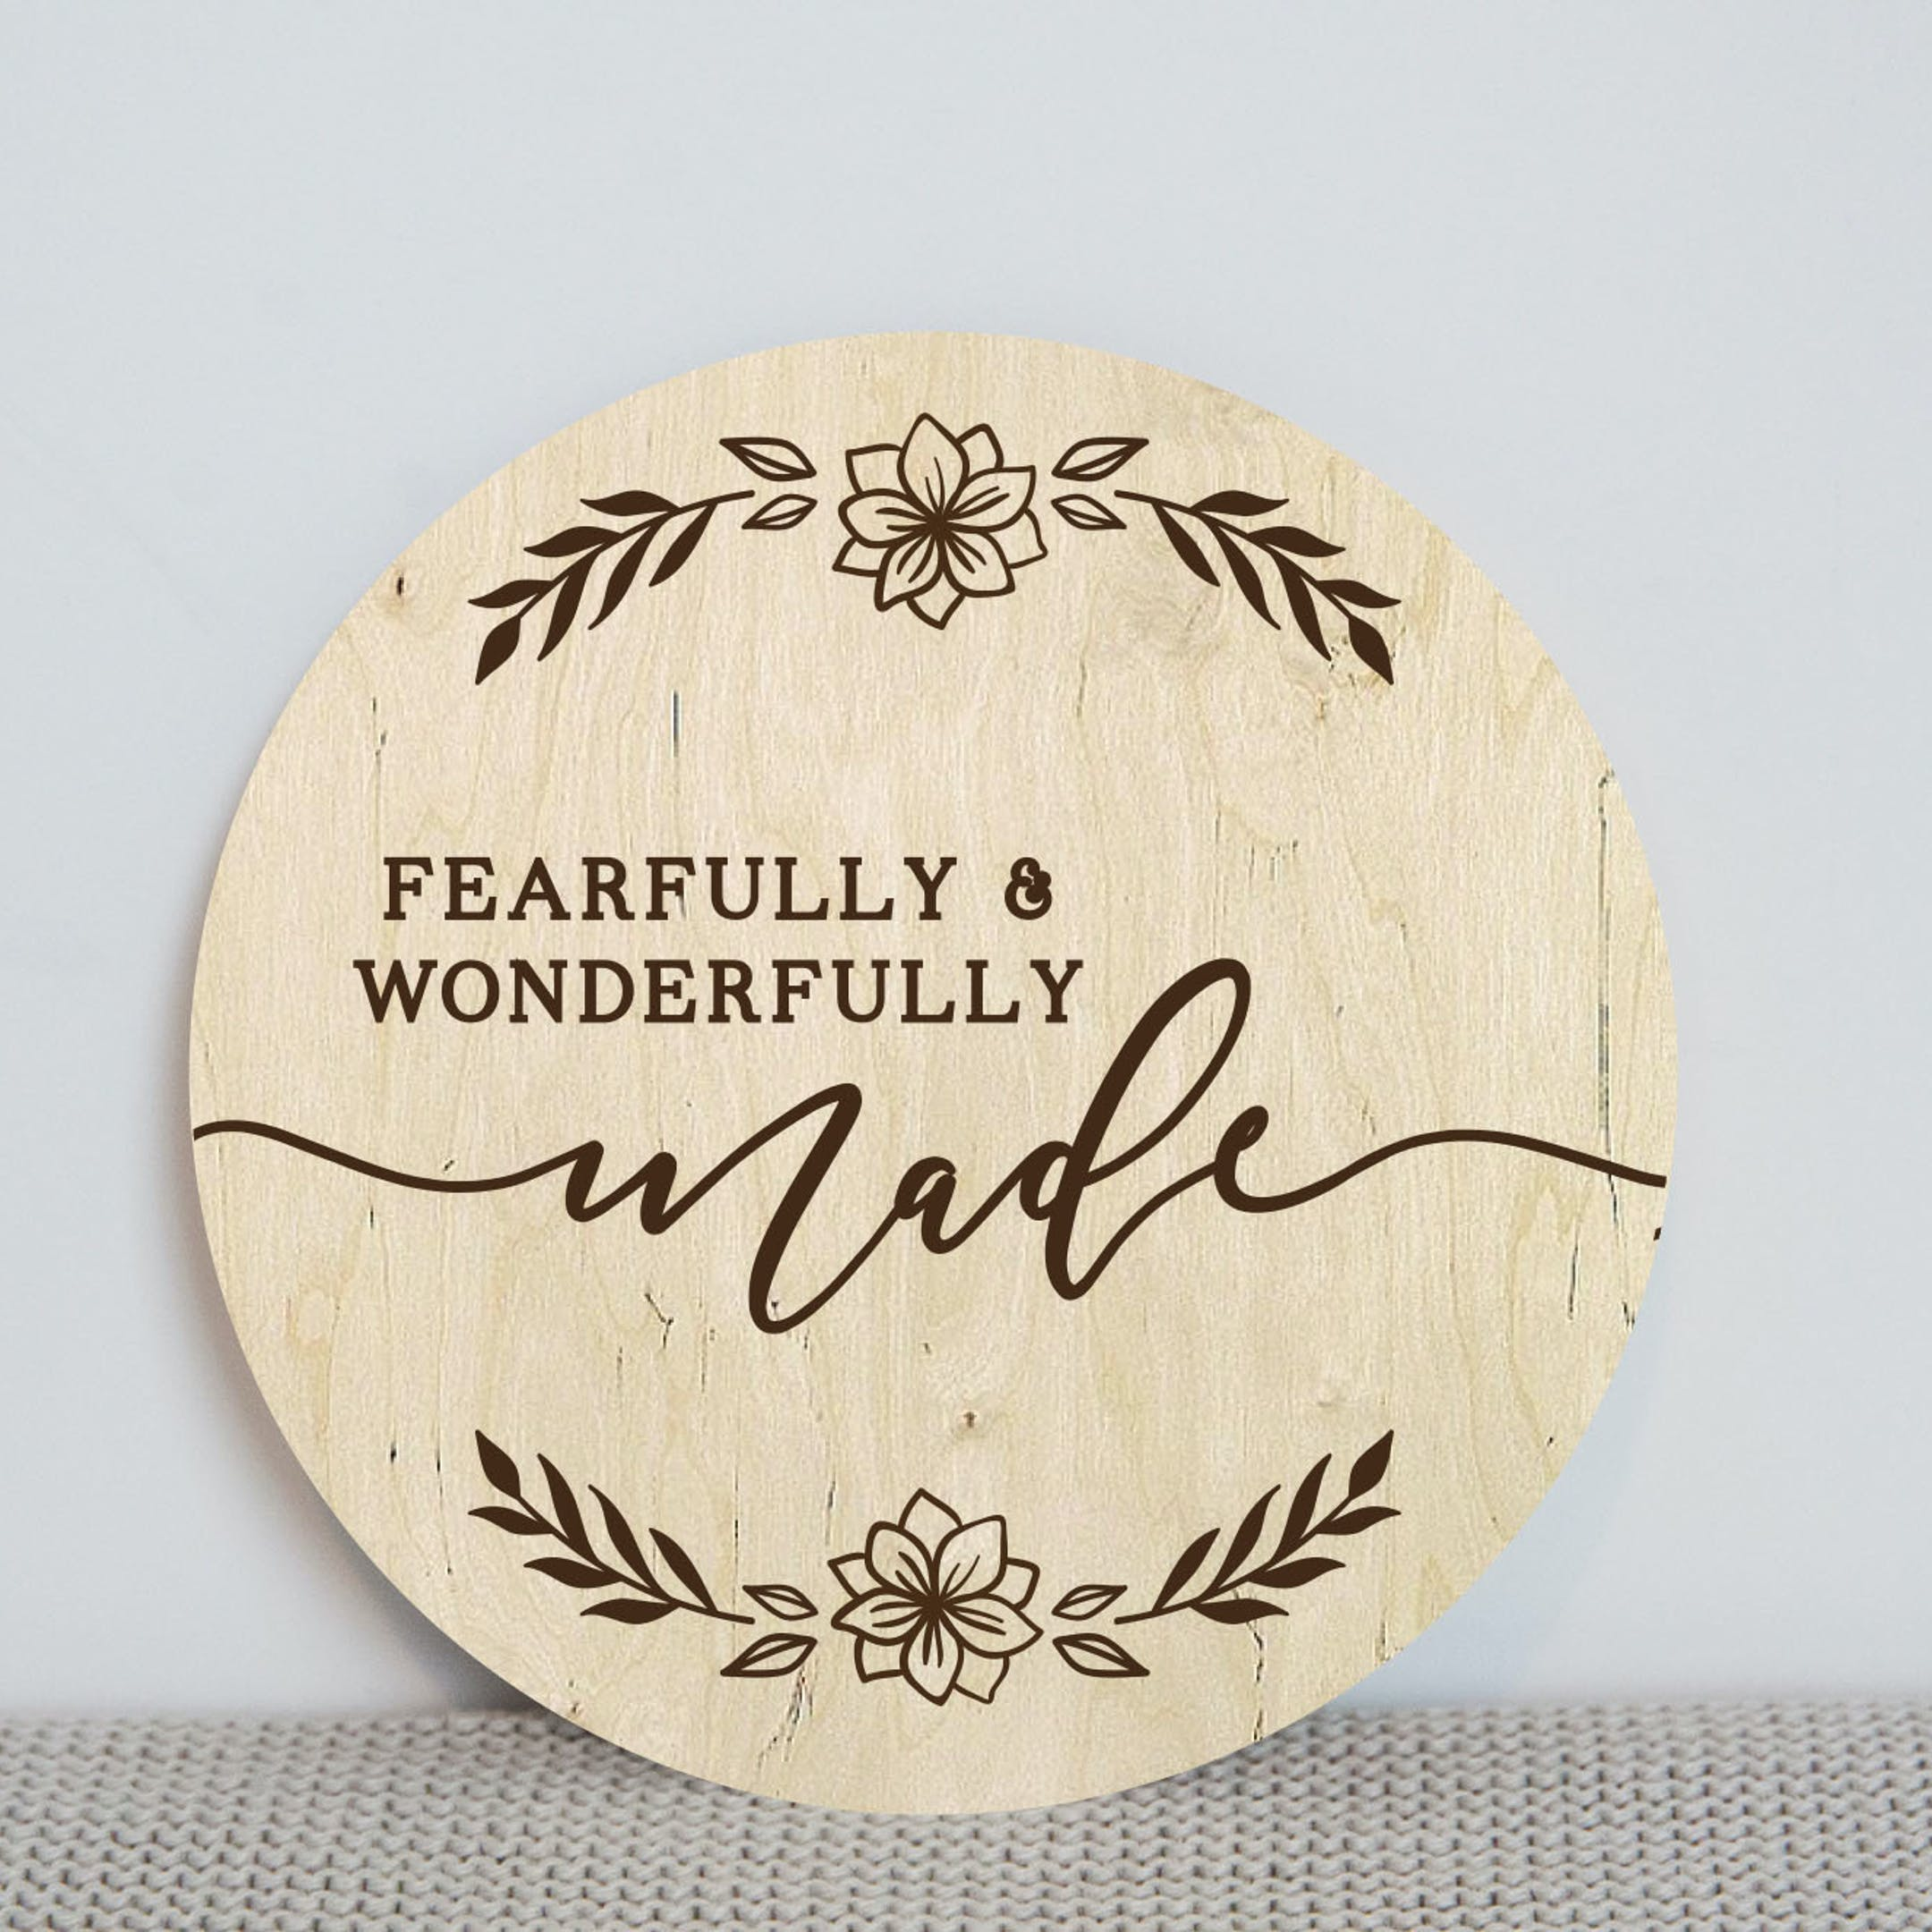 'Fearfully & Wonderfully Made' Wooden Baby Milestone Disc - Psalm 139:14 - Birch and Tides